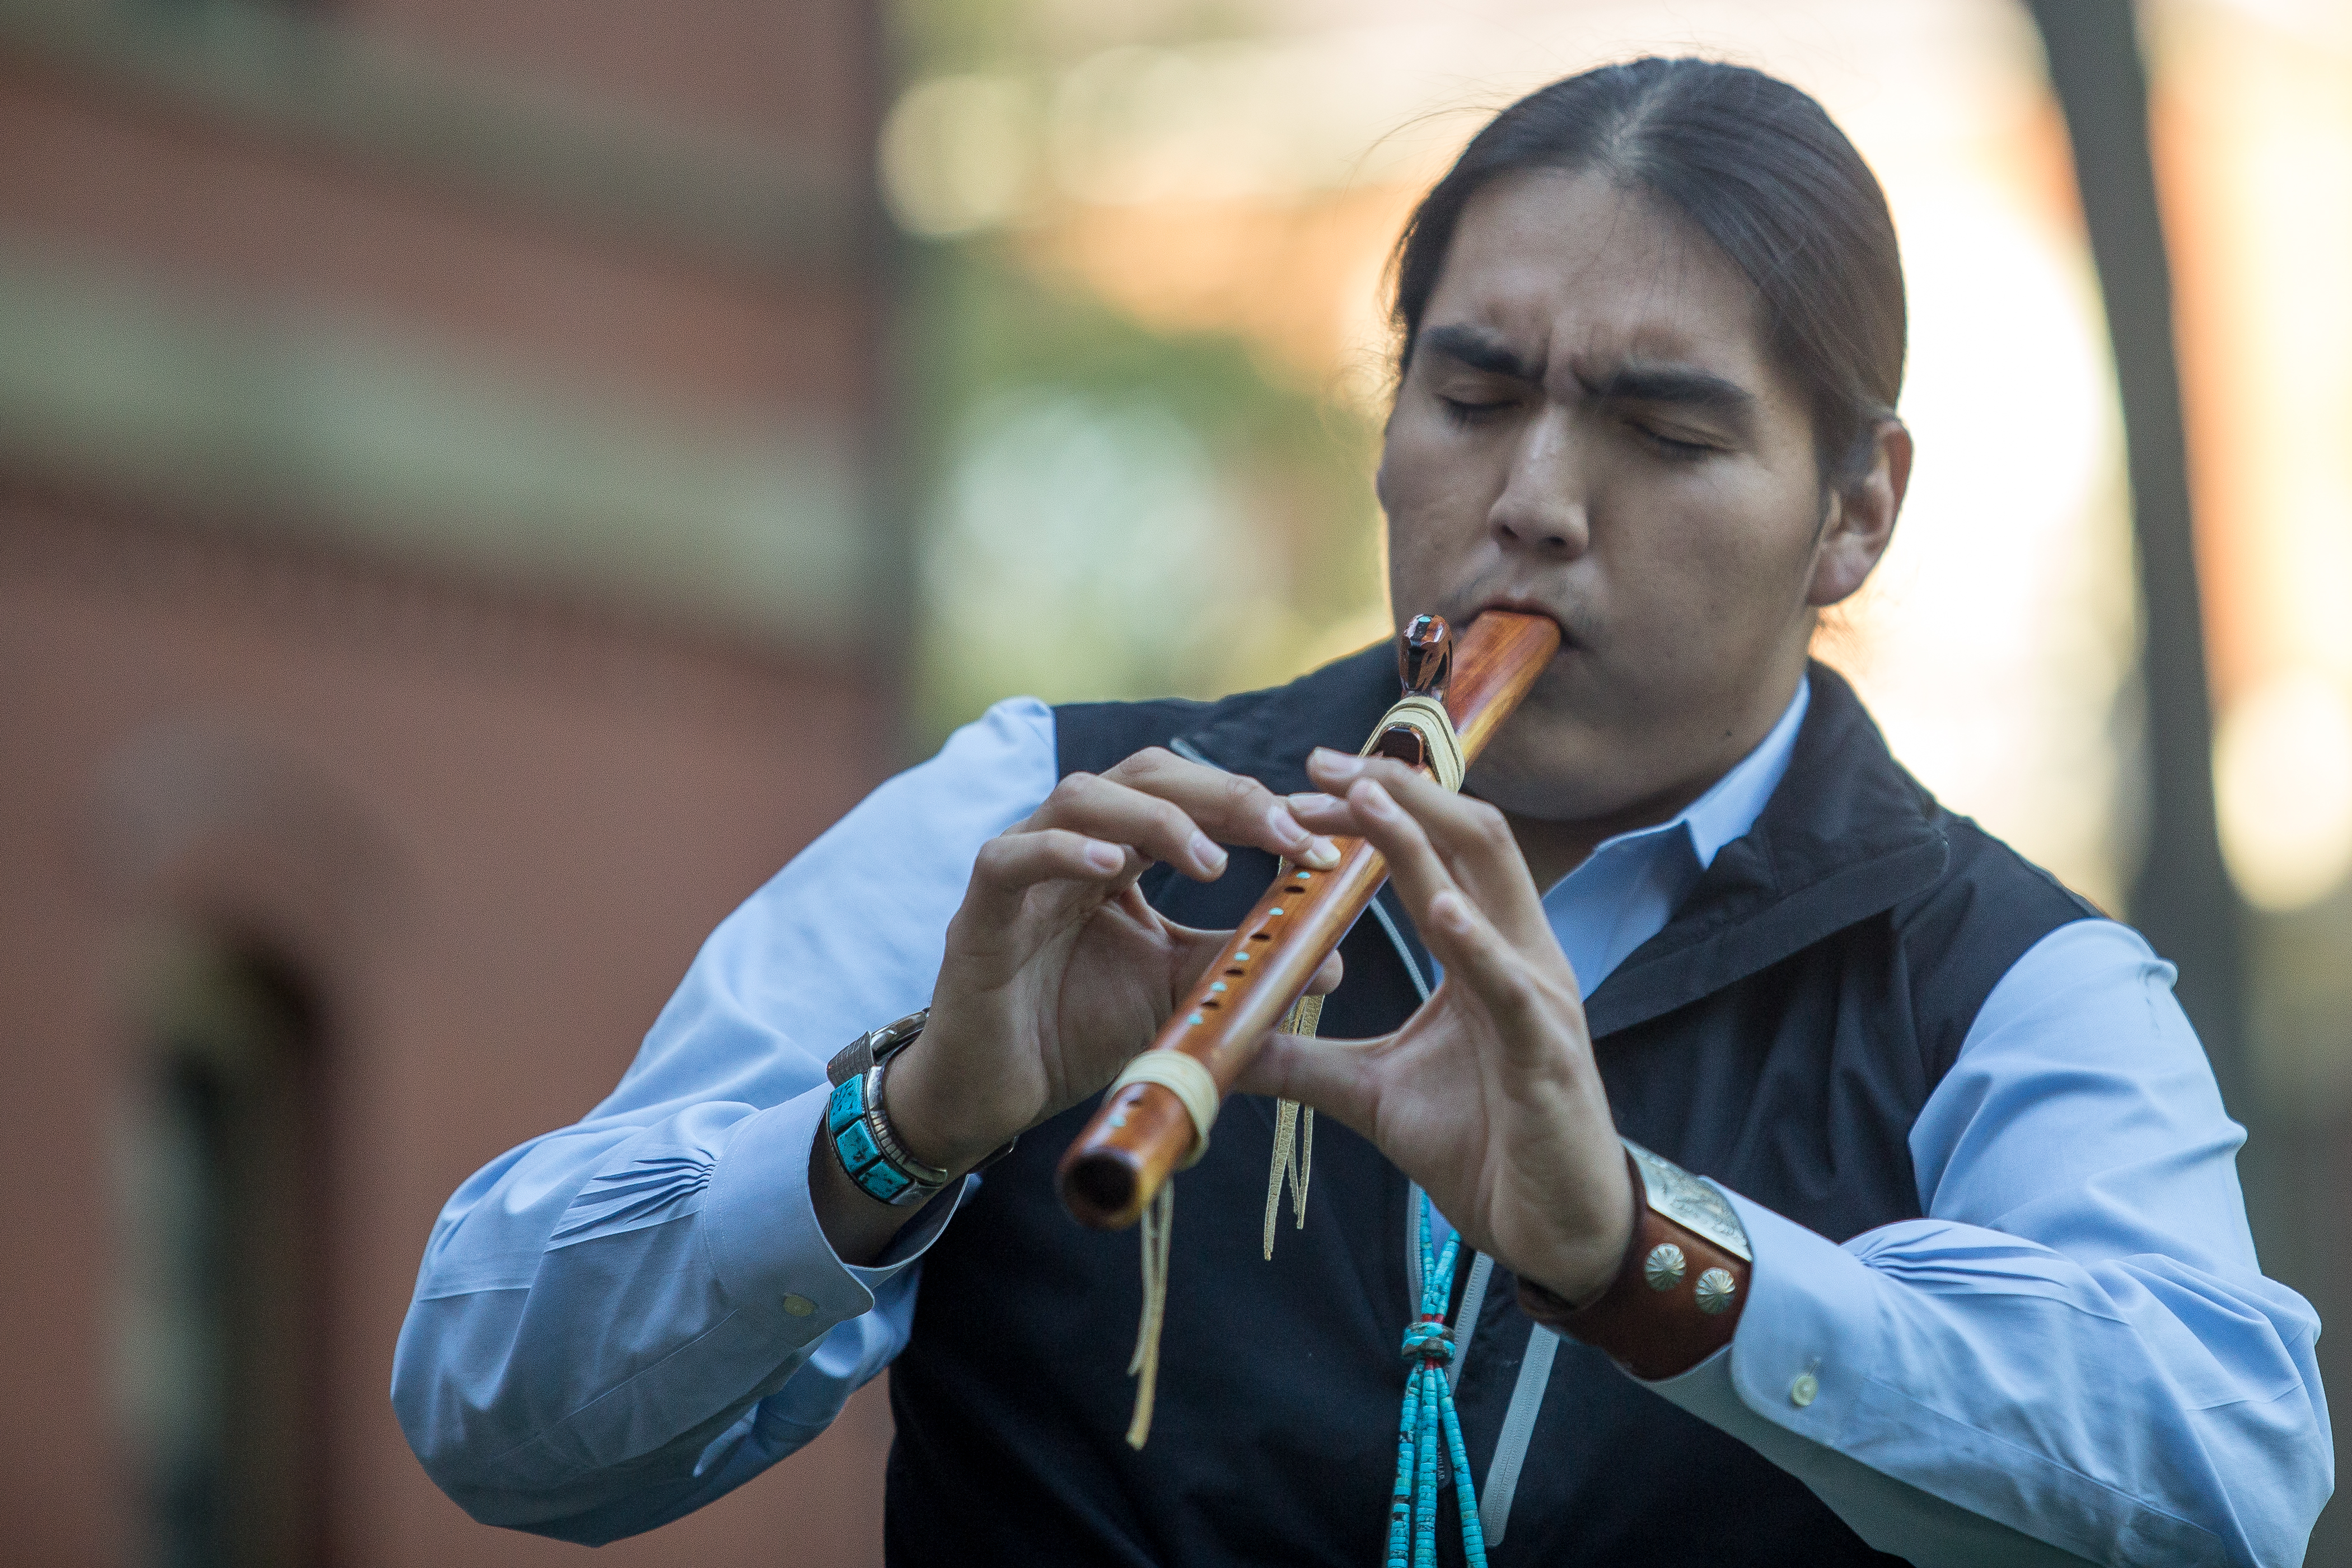 Clark performs a song on the flute at the Indigenous Peoples' Day celebration at Harvard University. Photo by Alexandra Wimley/BU News Service